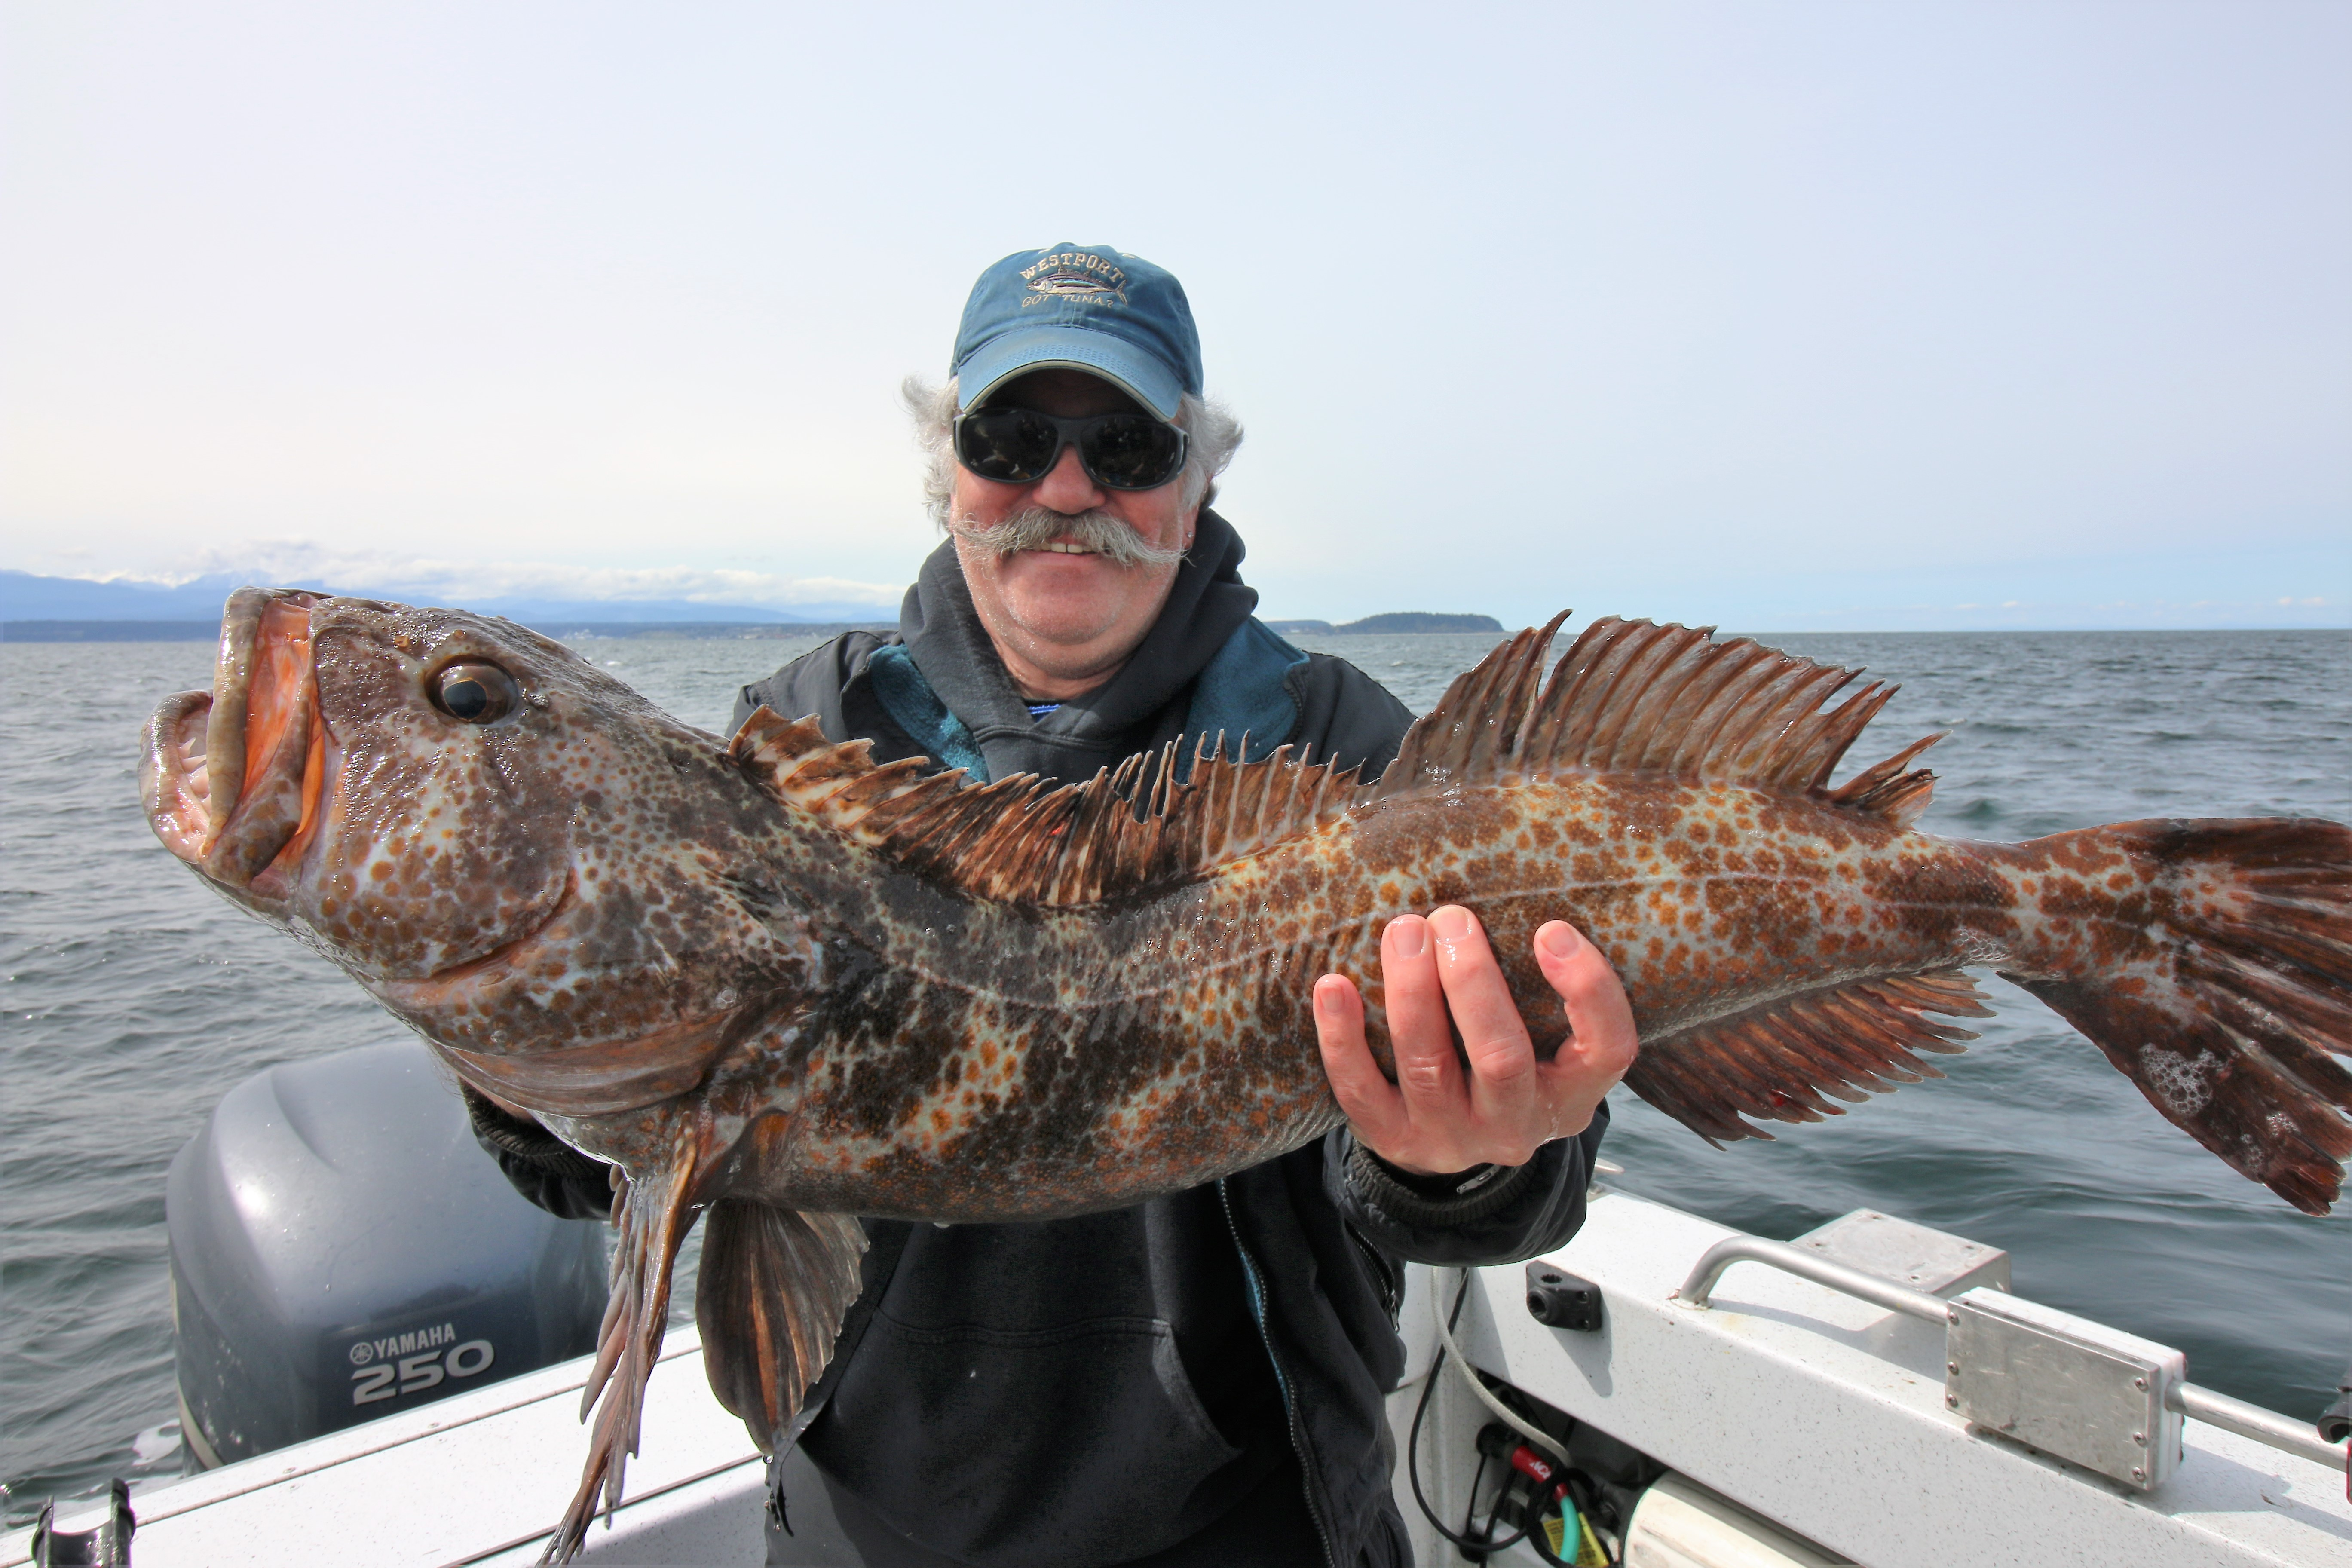 Seattle fishing charters lingcod fishing on 4 11 17 for Puget sound fishing charters